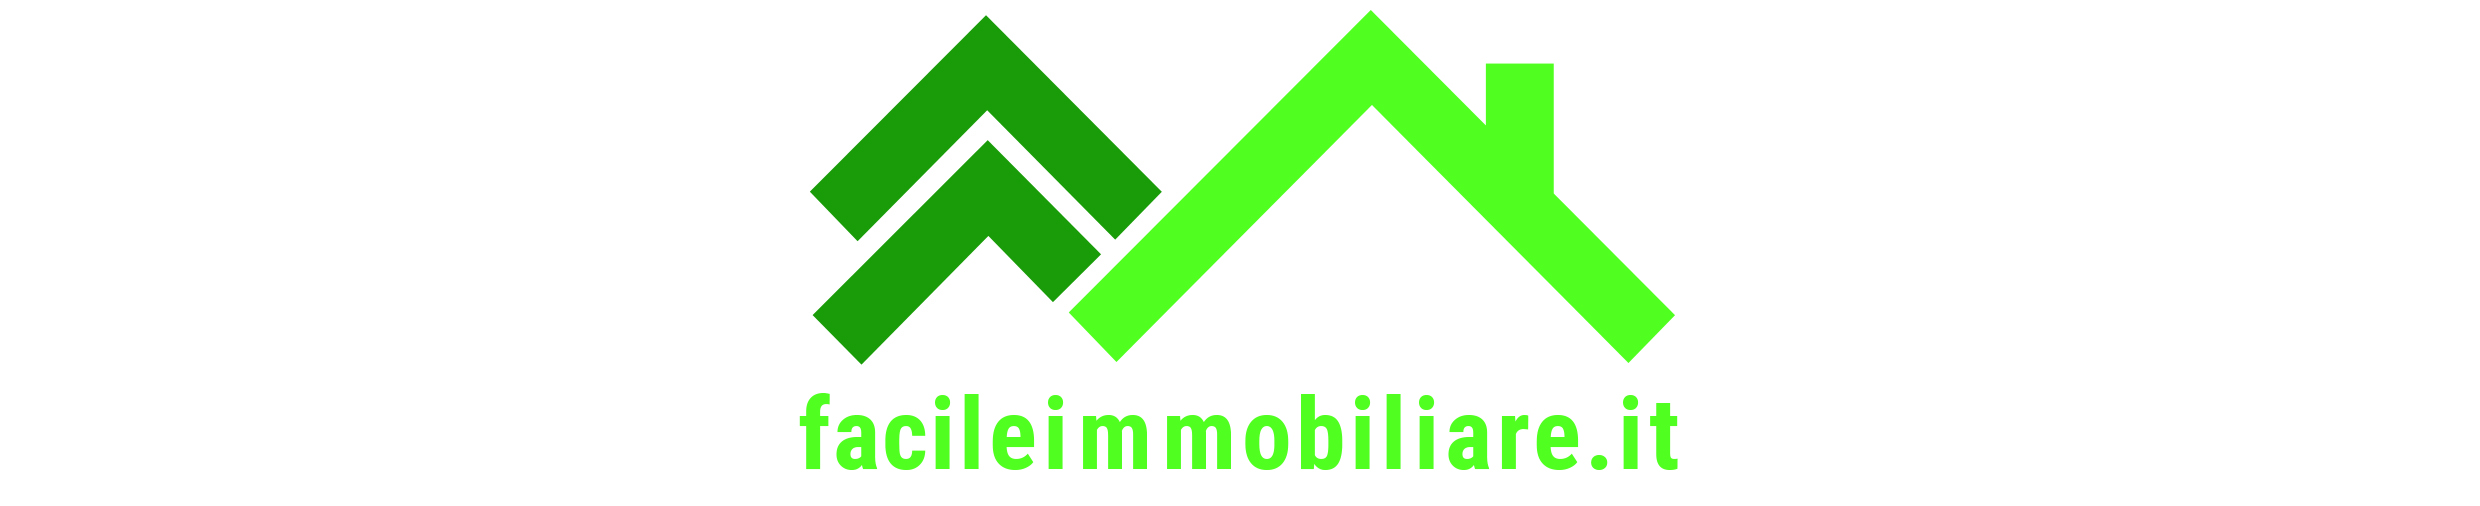 logo Facileimmobiliare.it Srls